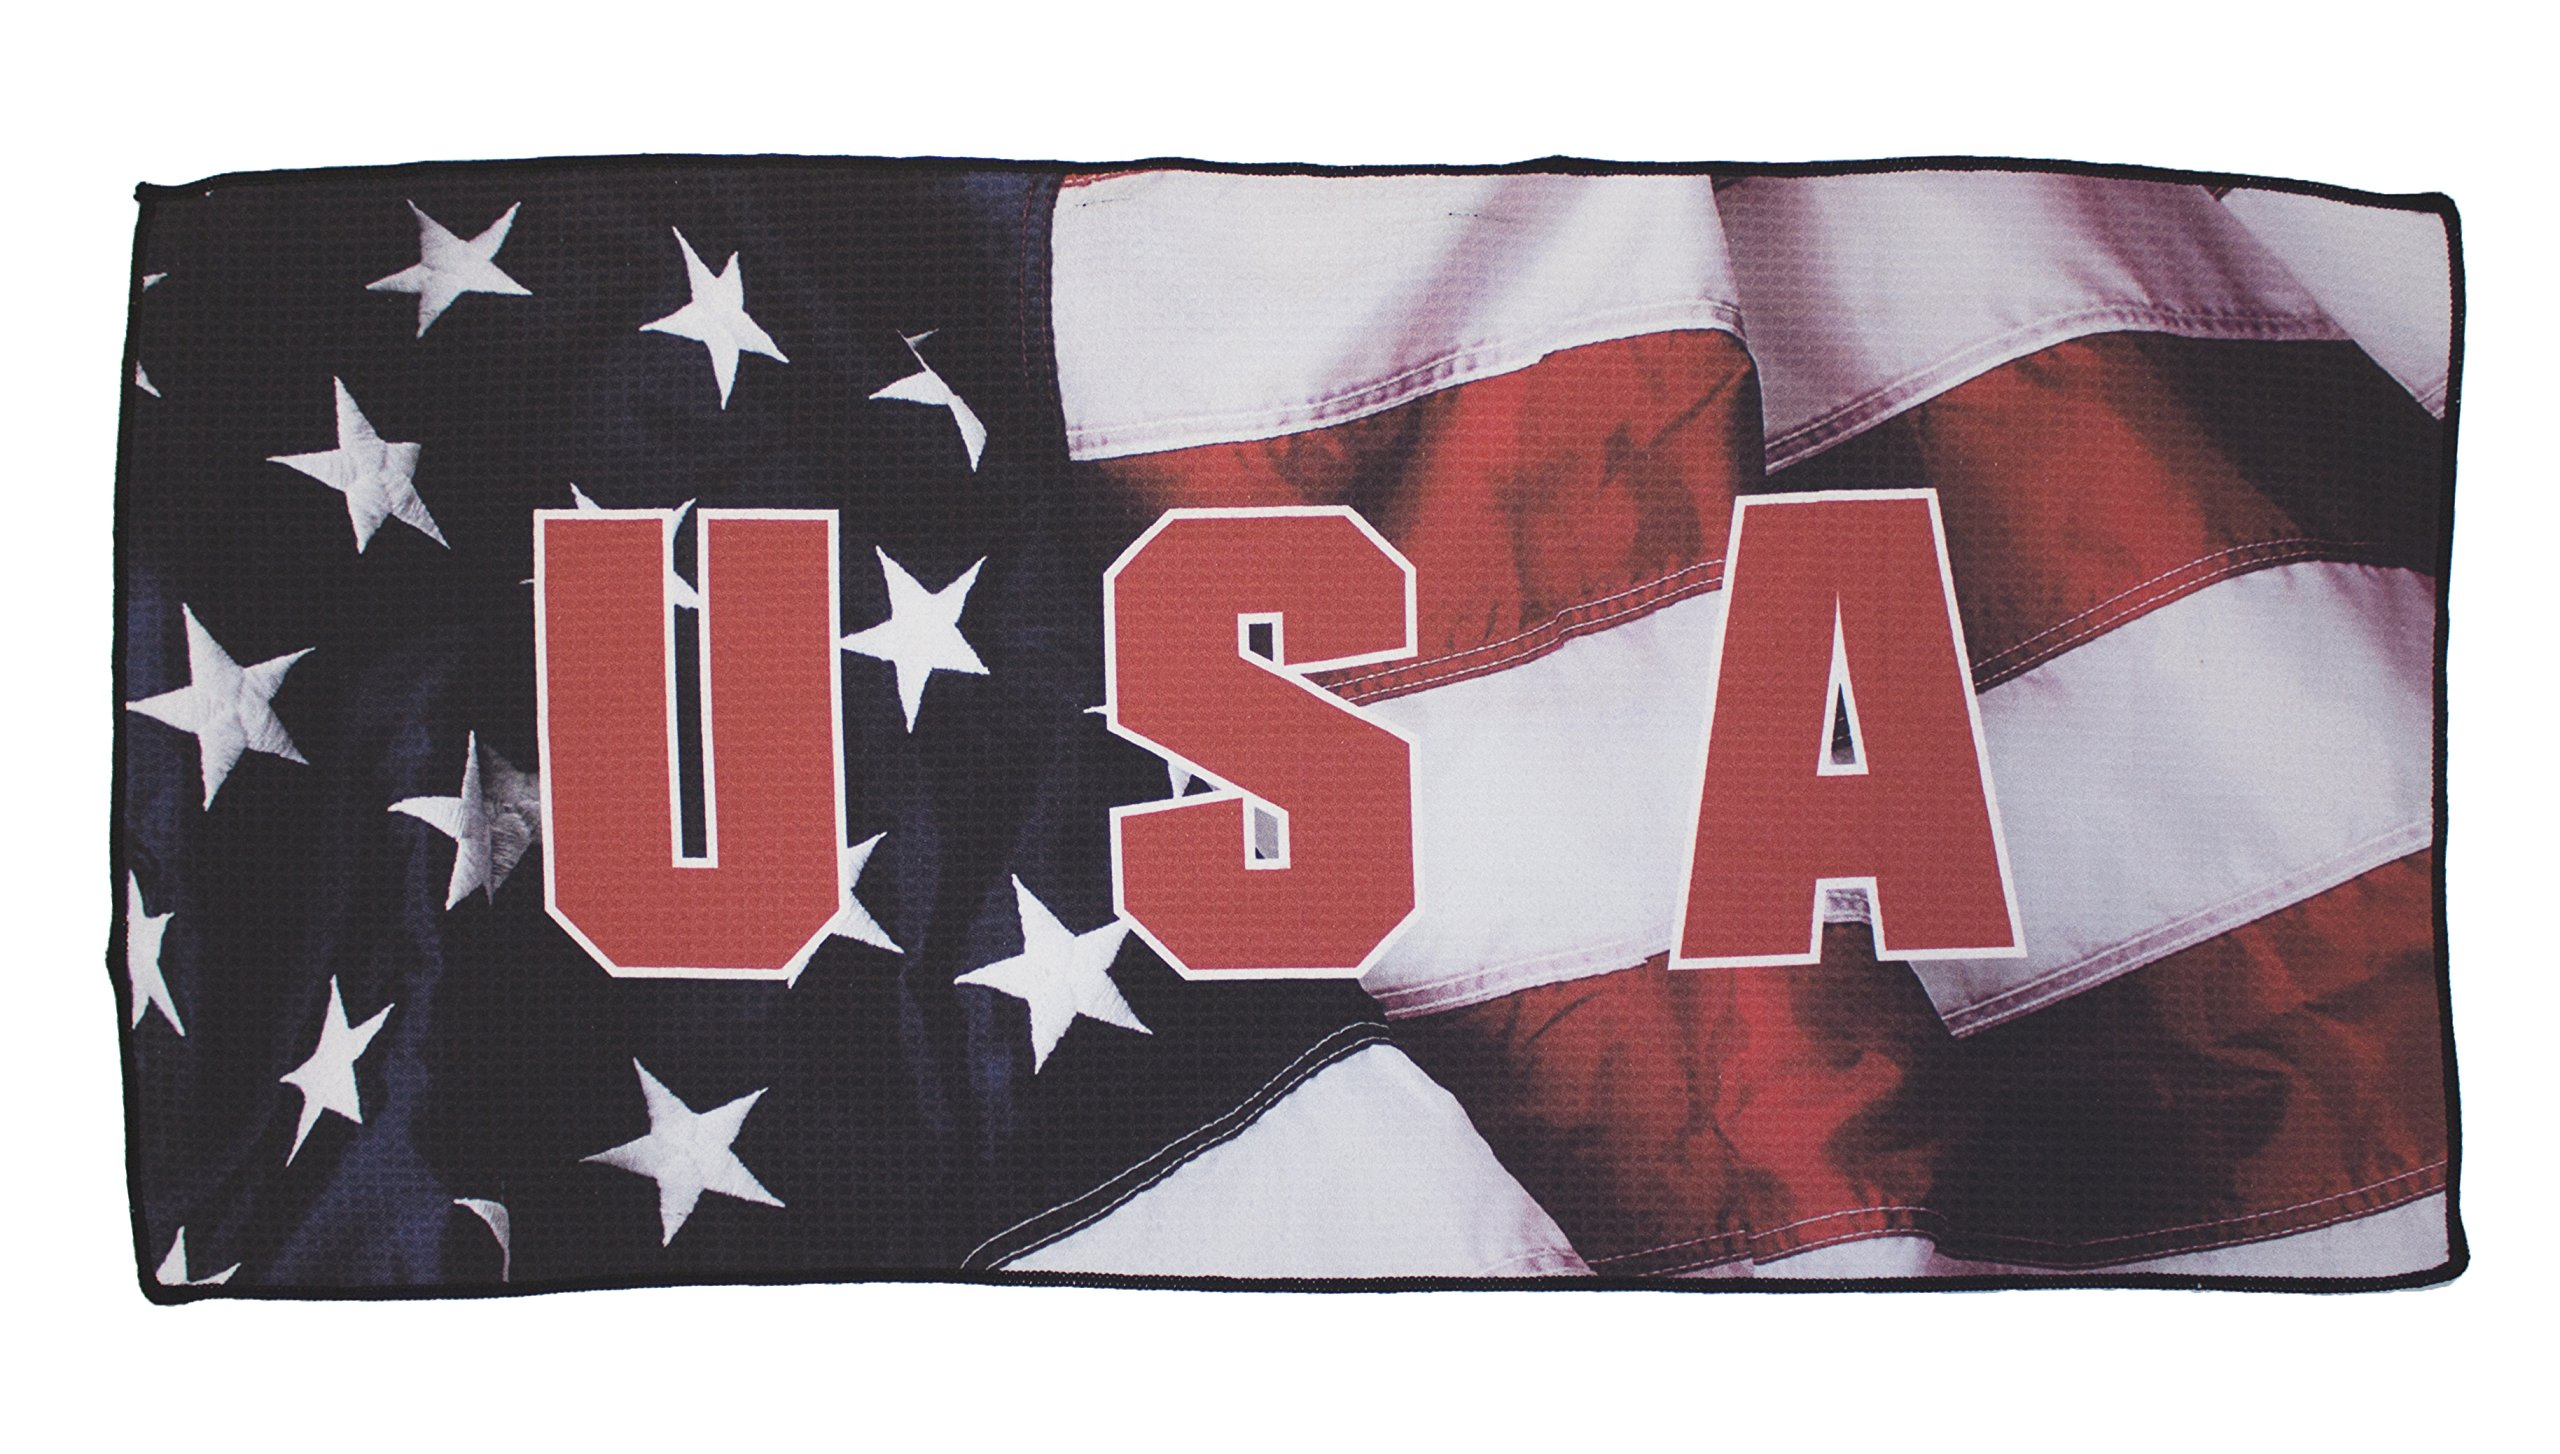 Devant Sport Towels USA Flag Americana Series Microfiber Golf Towel, White, 16 x 32 by Devant Sport Towels (Image #1)